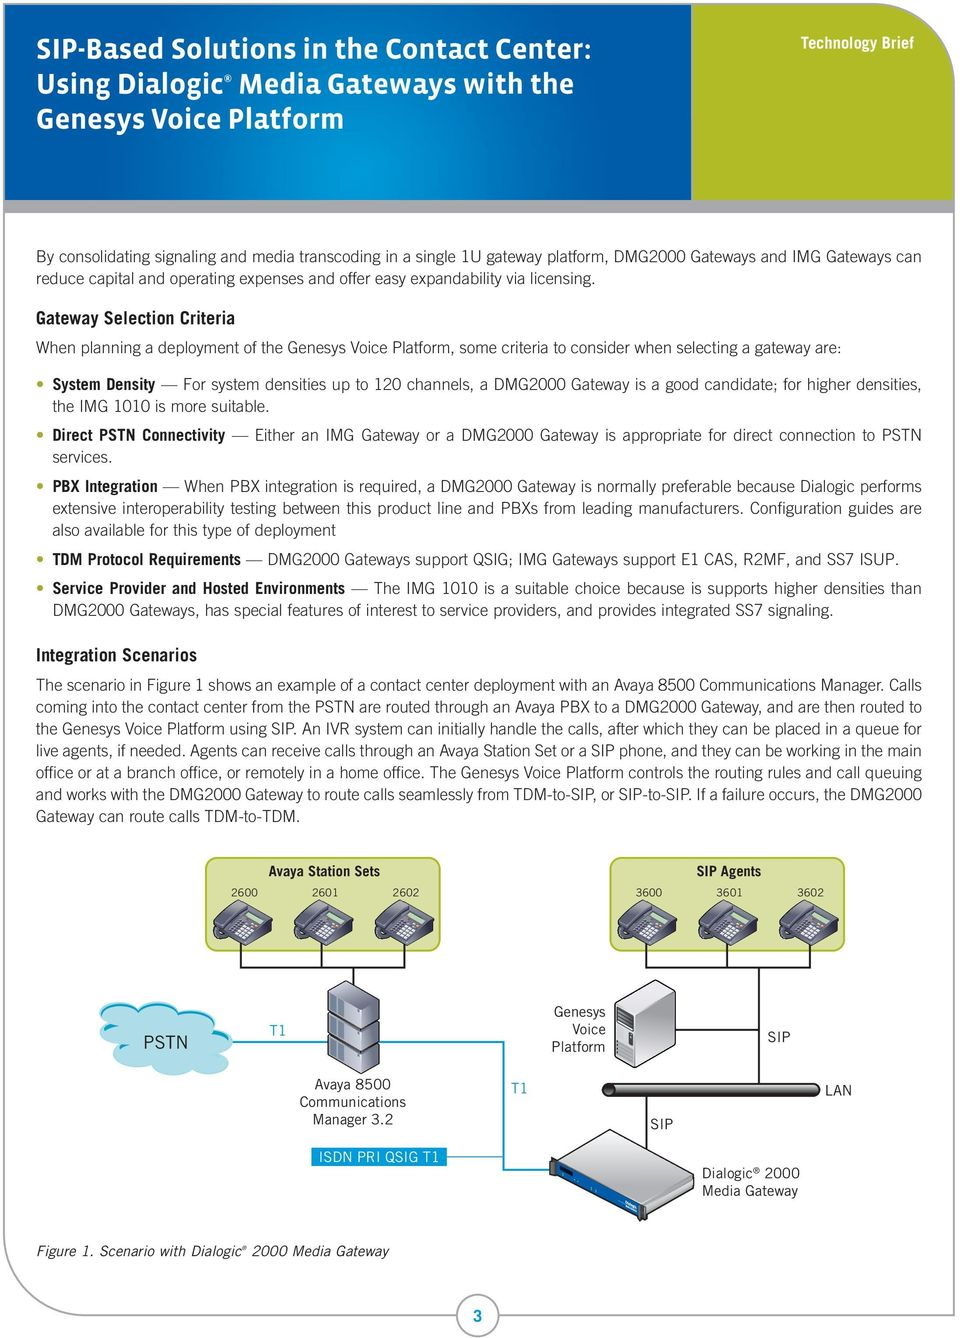 Gateway Selection Criteria When planning a deployment of the, some criteria to consider when selecting a gateway are: System Density For system densities up to 120 channels, a DMG2000 Gateway is a